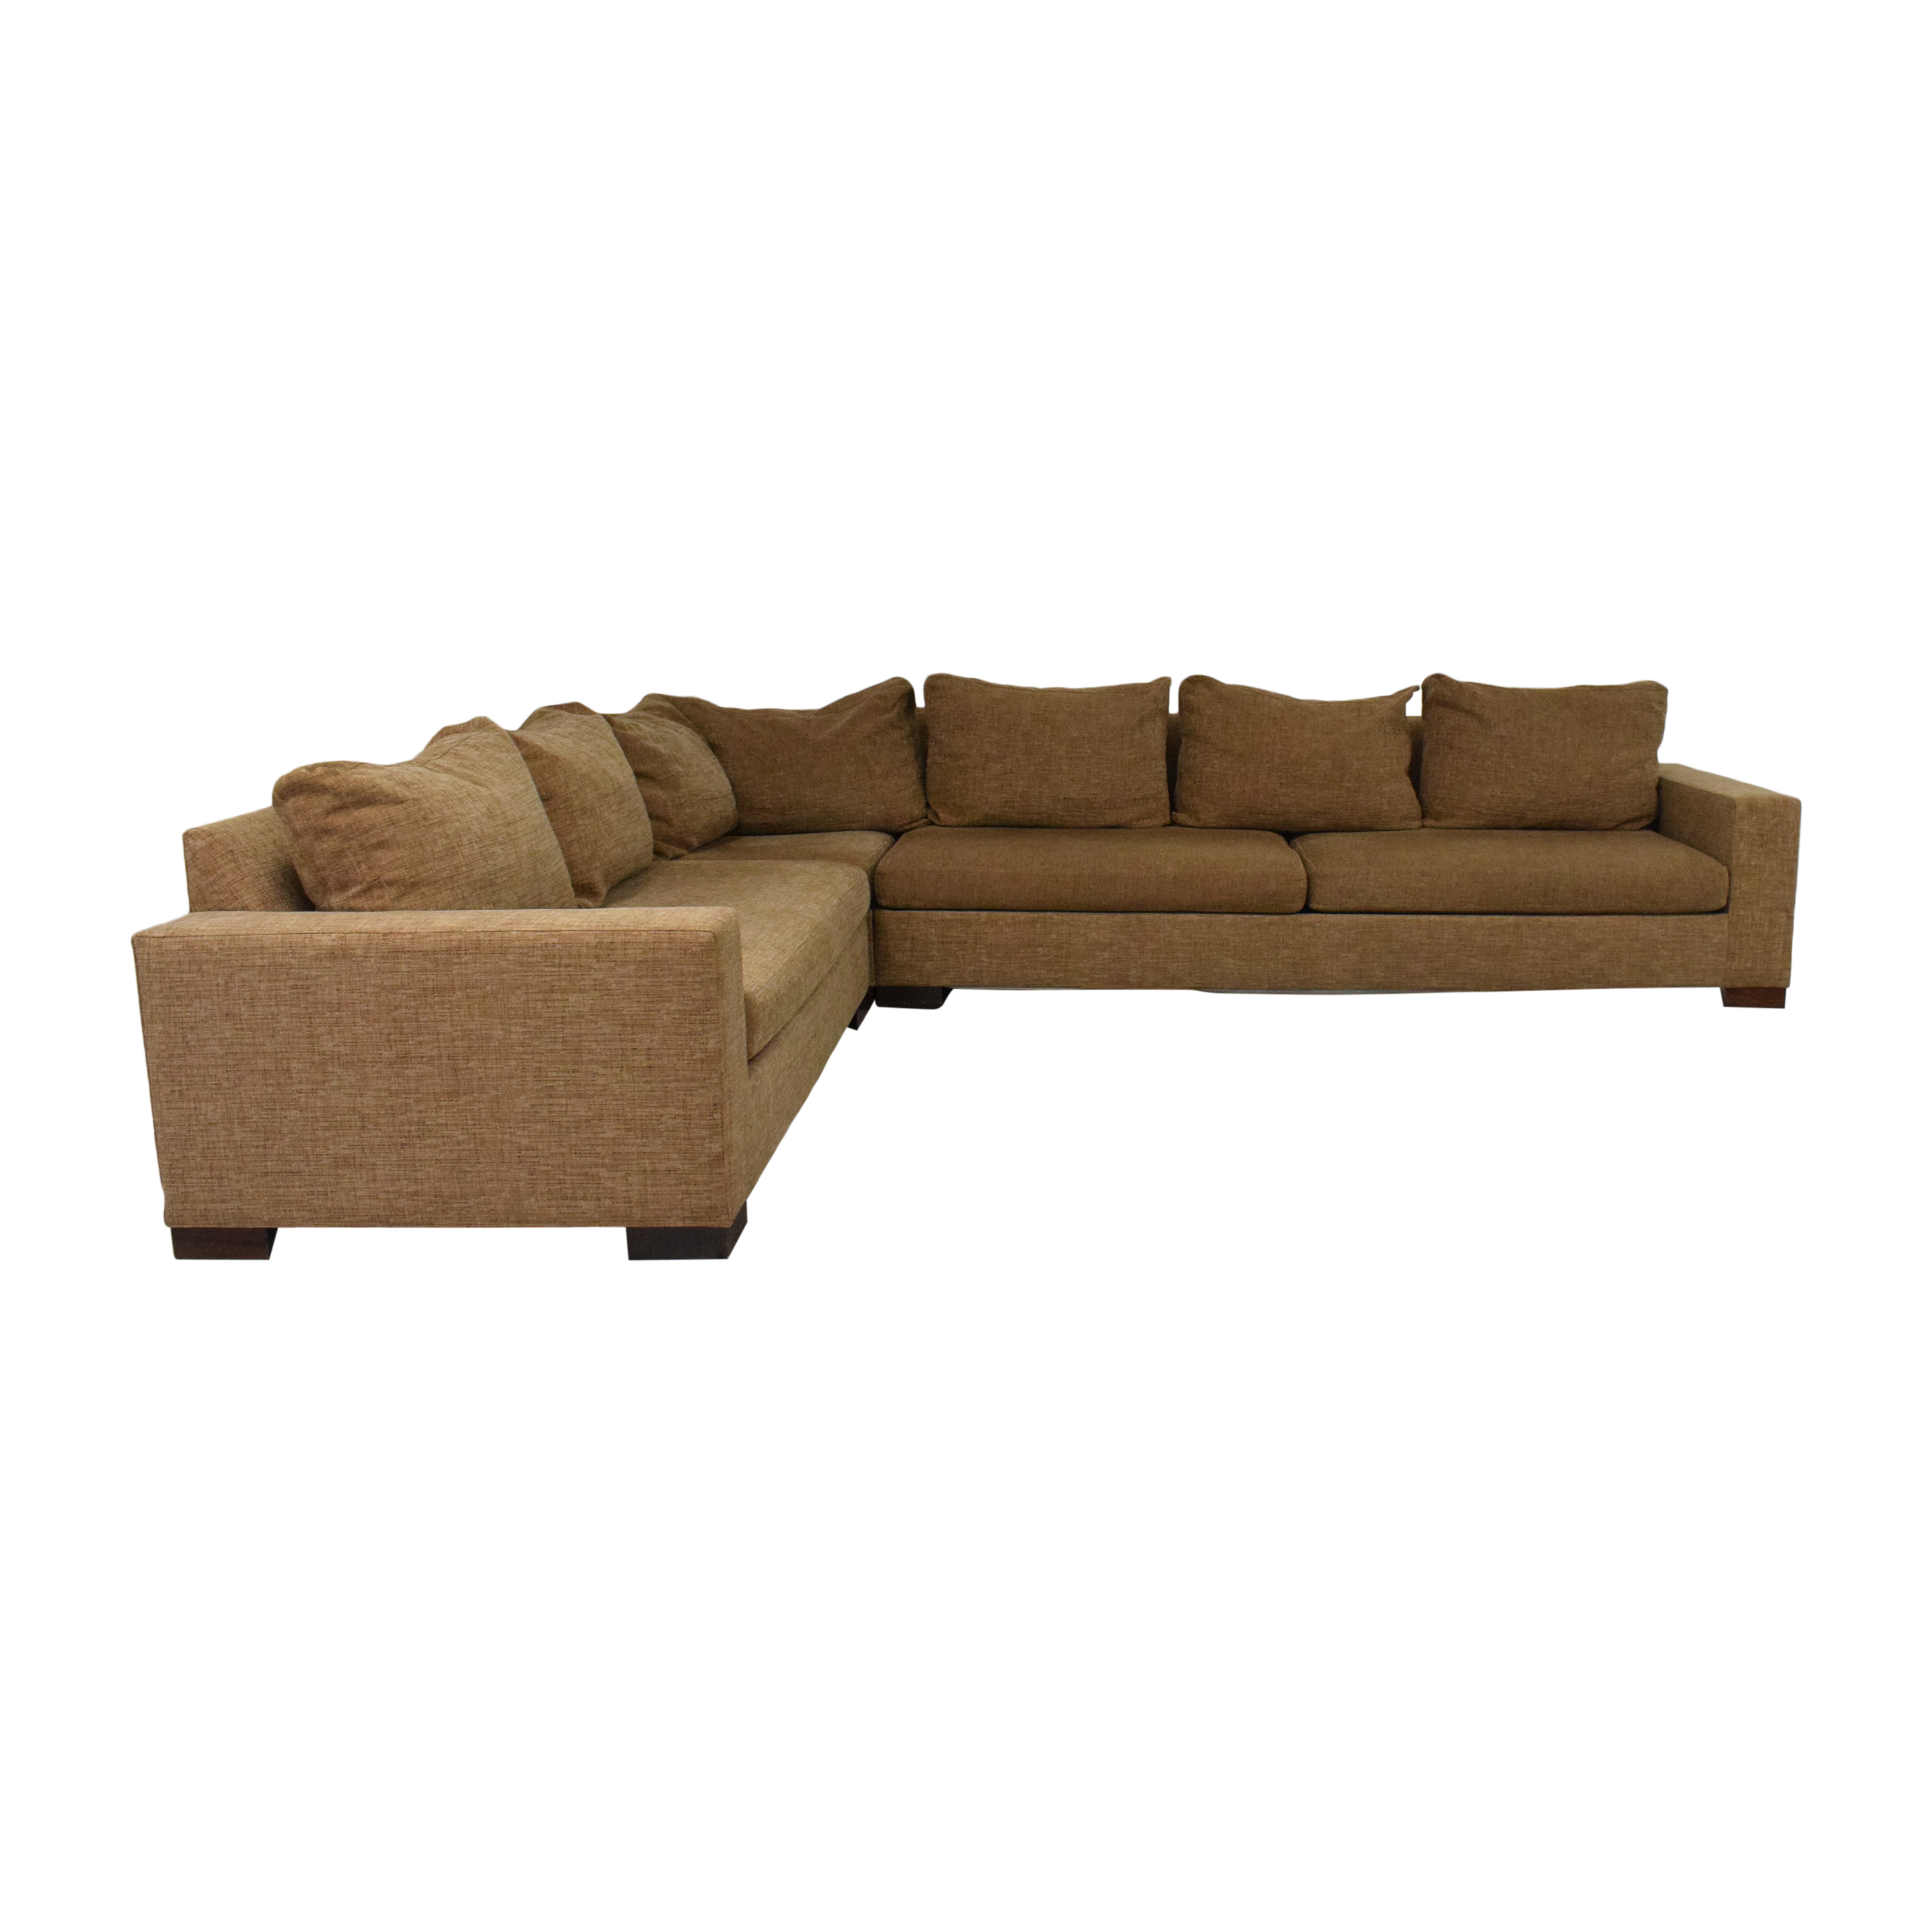 Track Arm Corner Sectional Sofa for sale